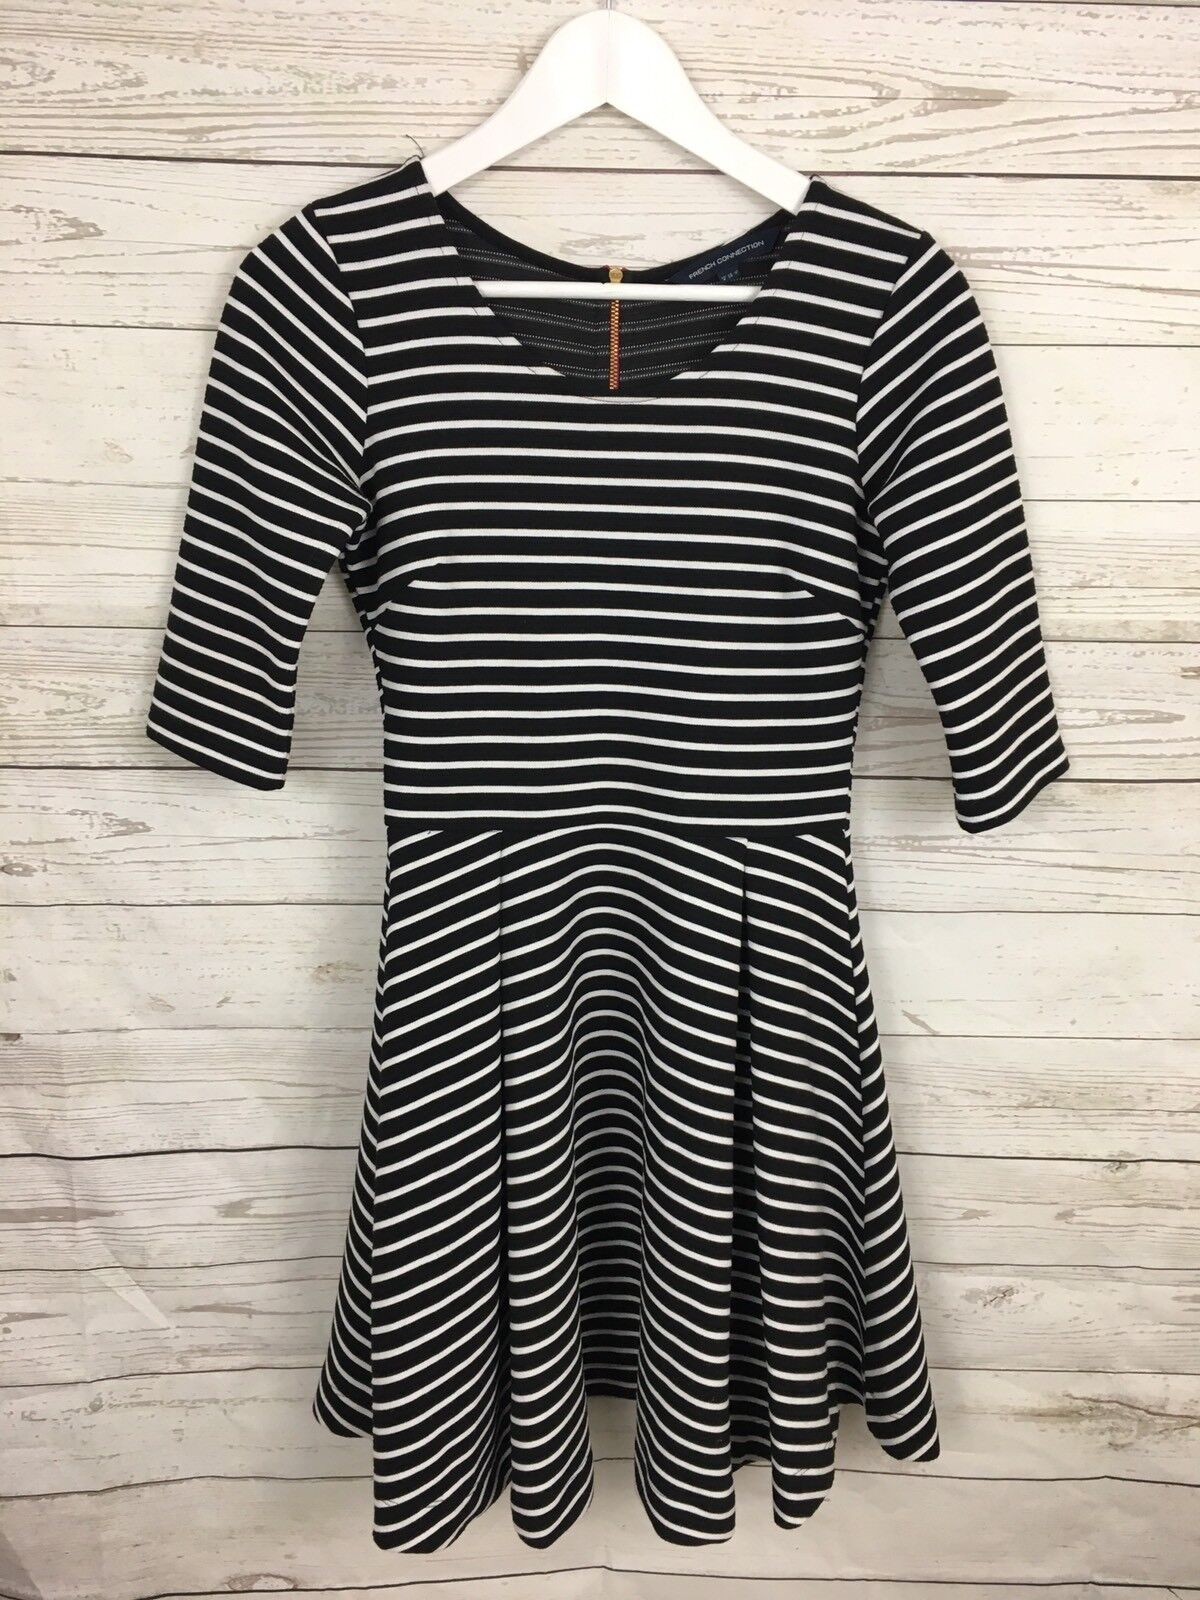 Women's French Connection Dress - UK8 - Striped- Great Condition